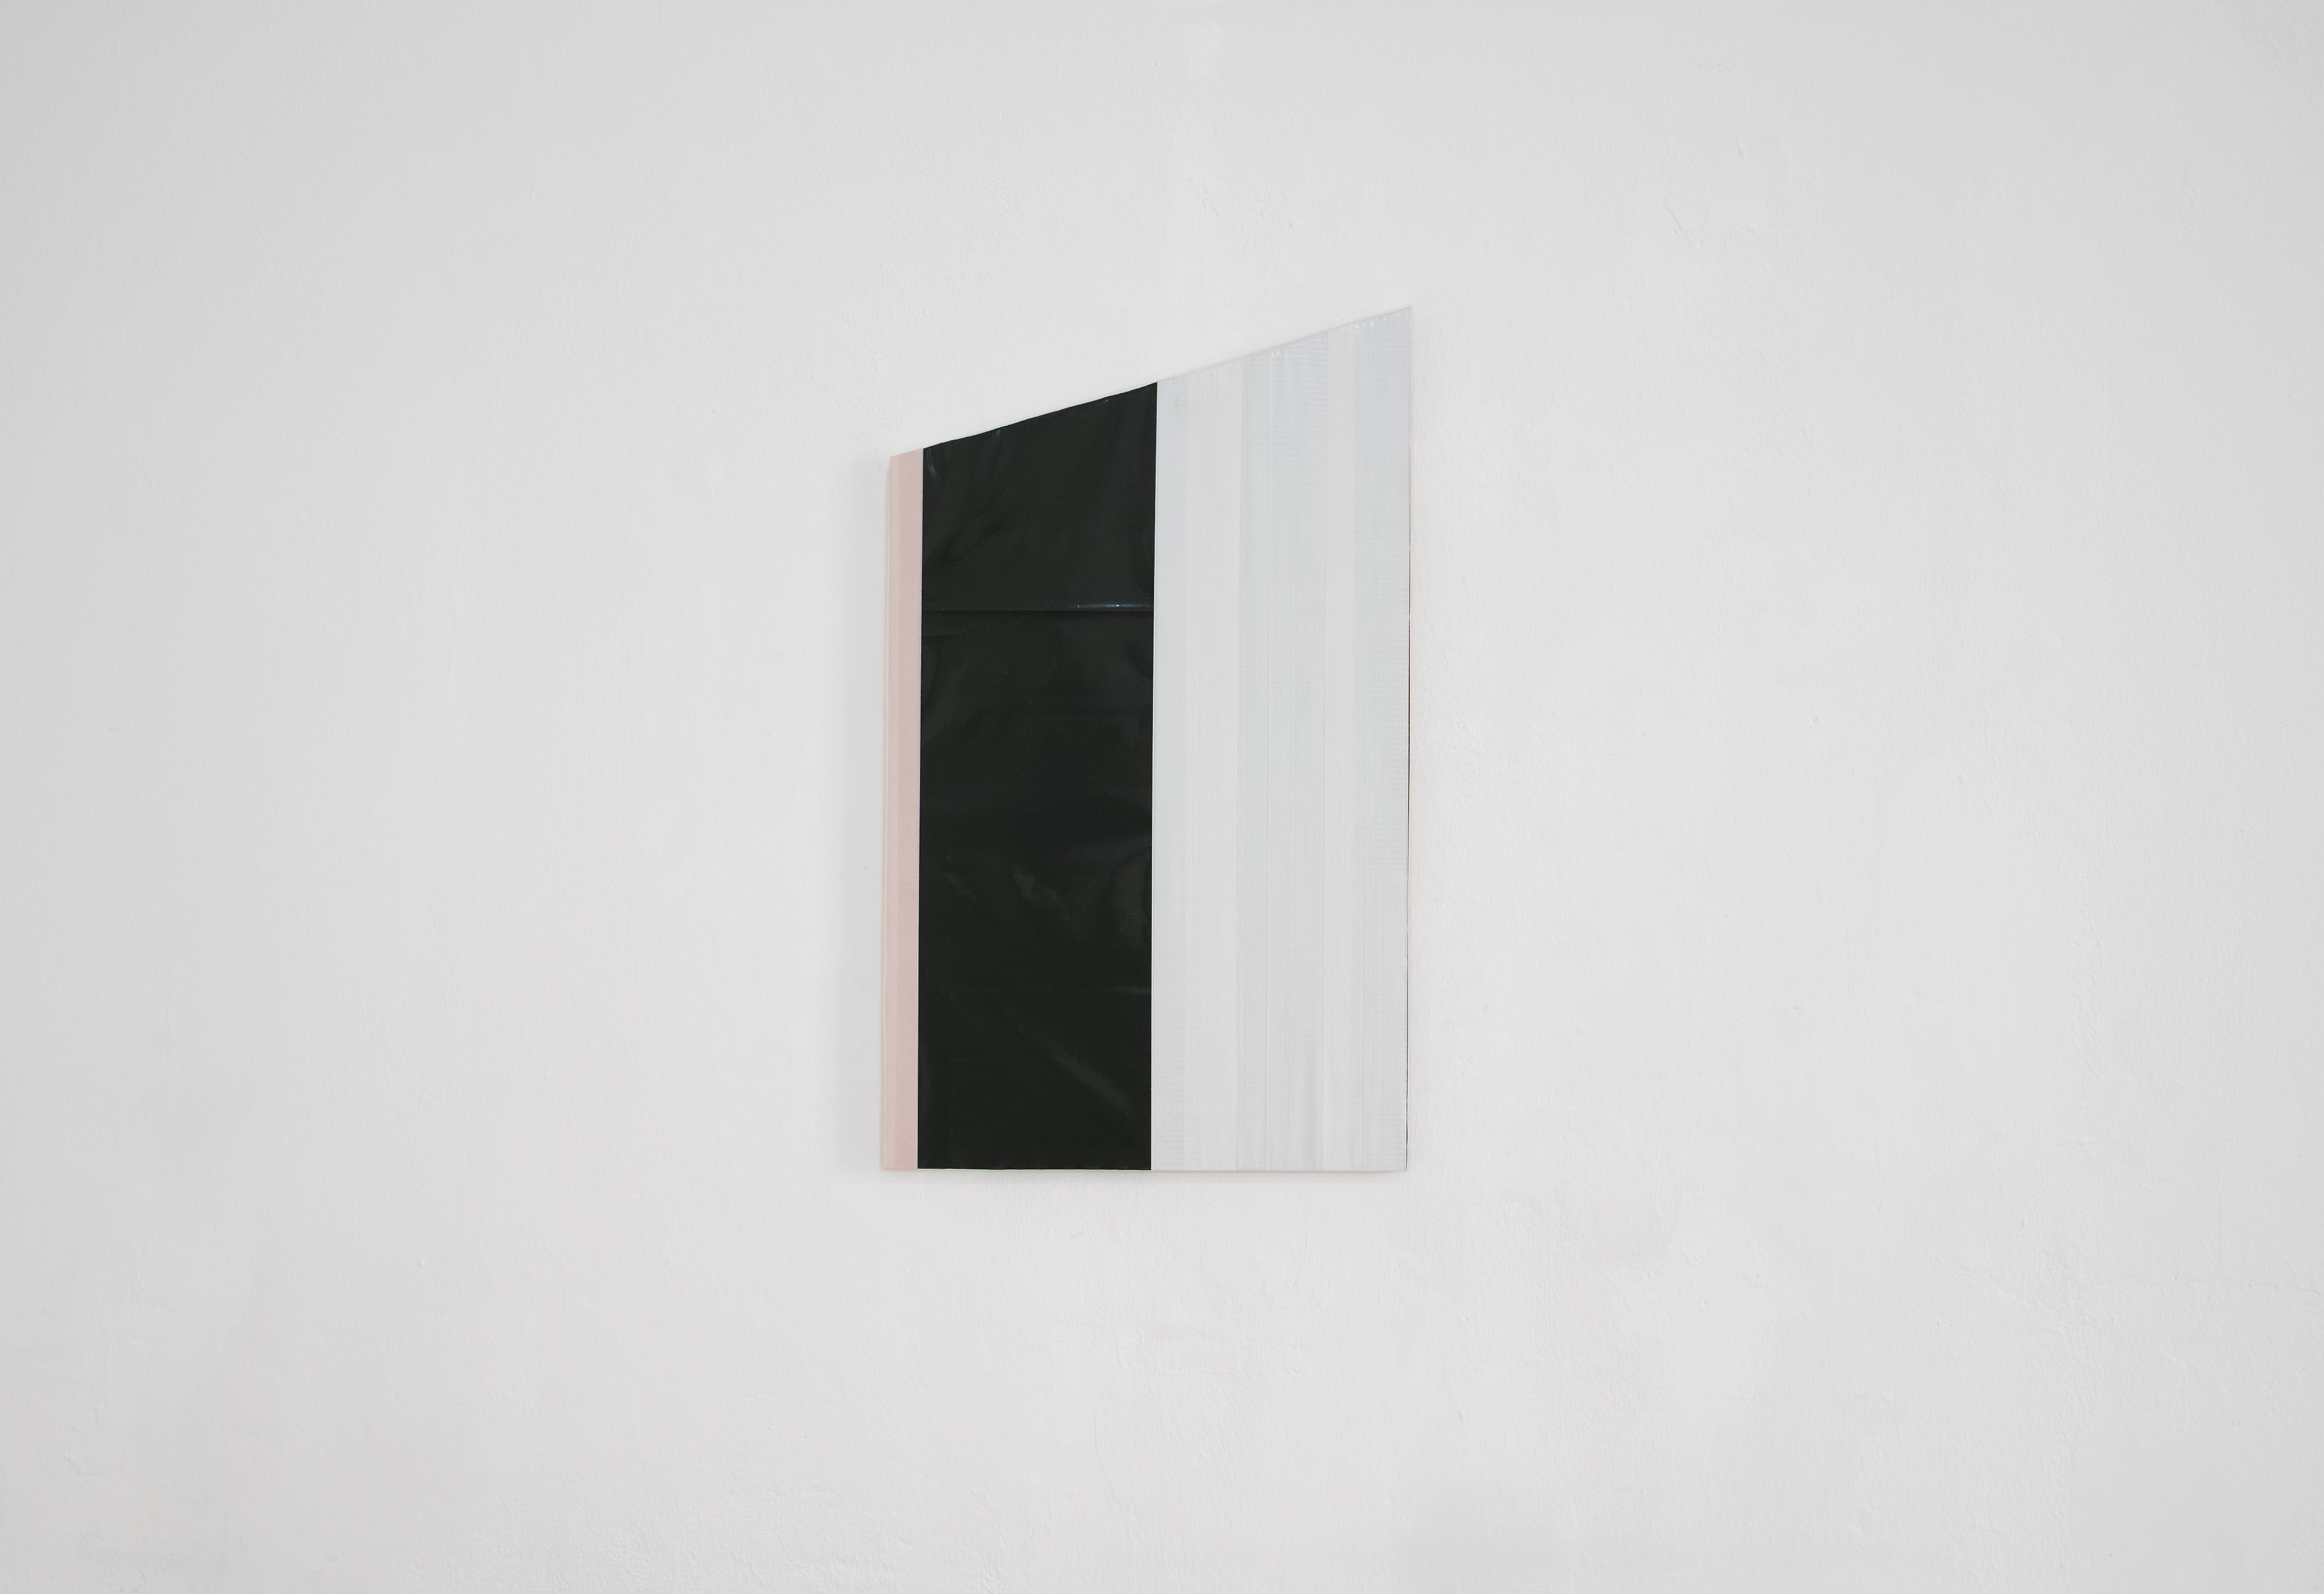 Diversions Series, 2018, Construction tape and plastics on plywood, 31×52cm